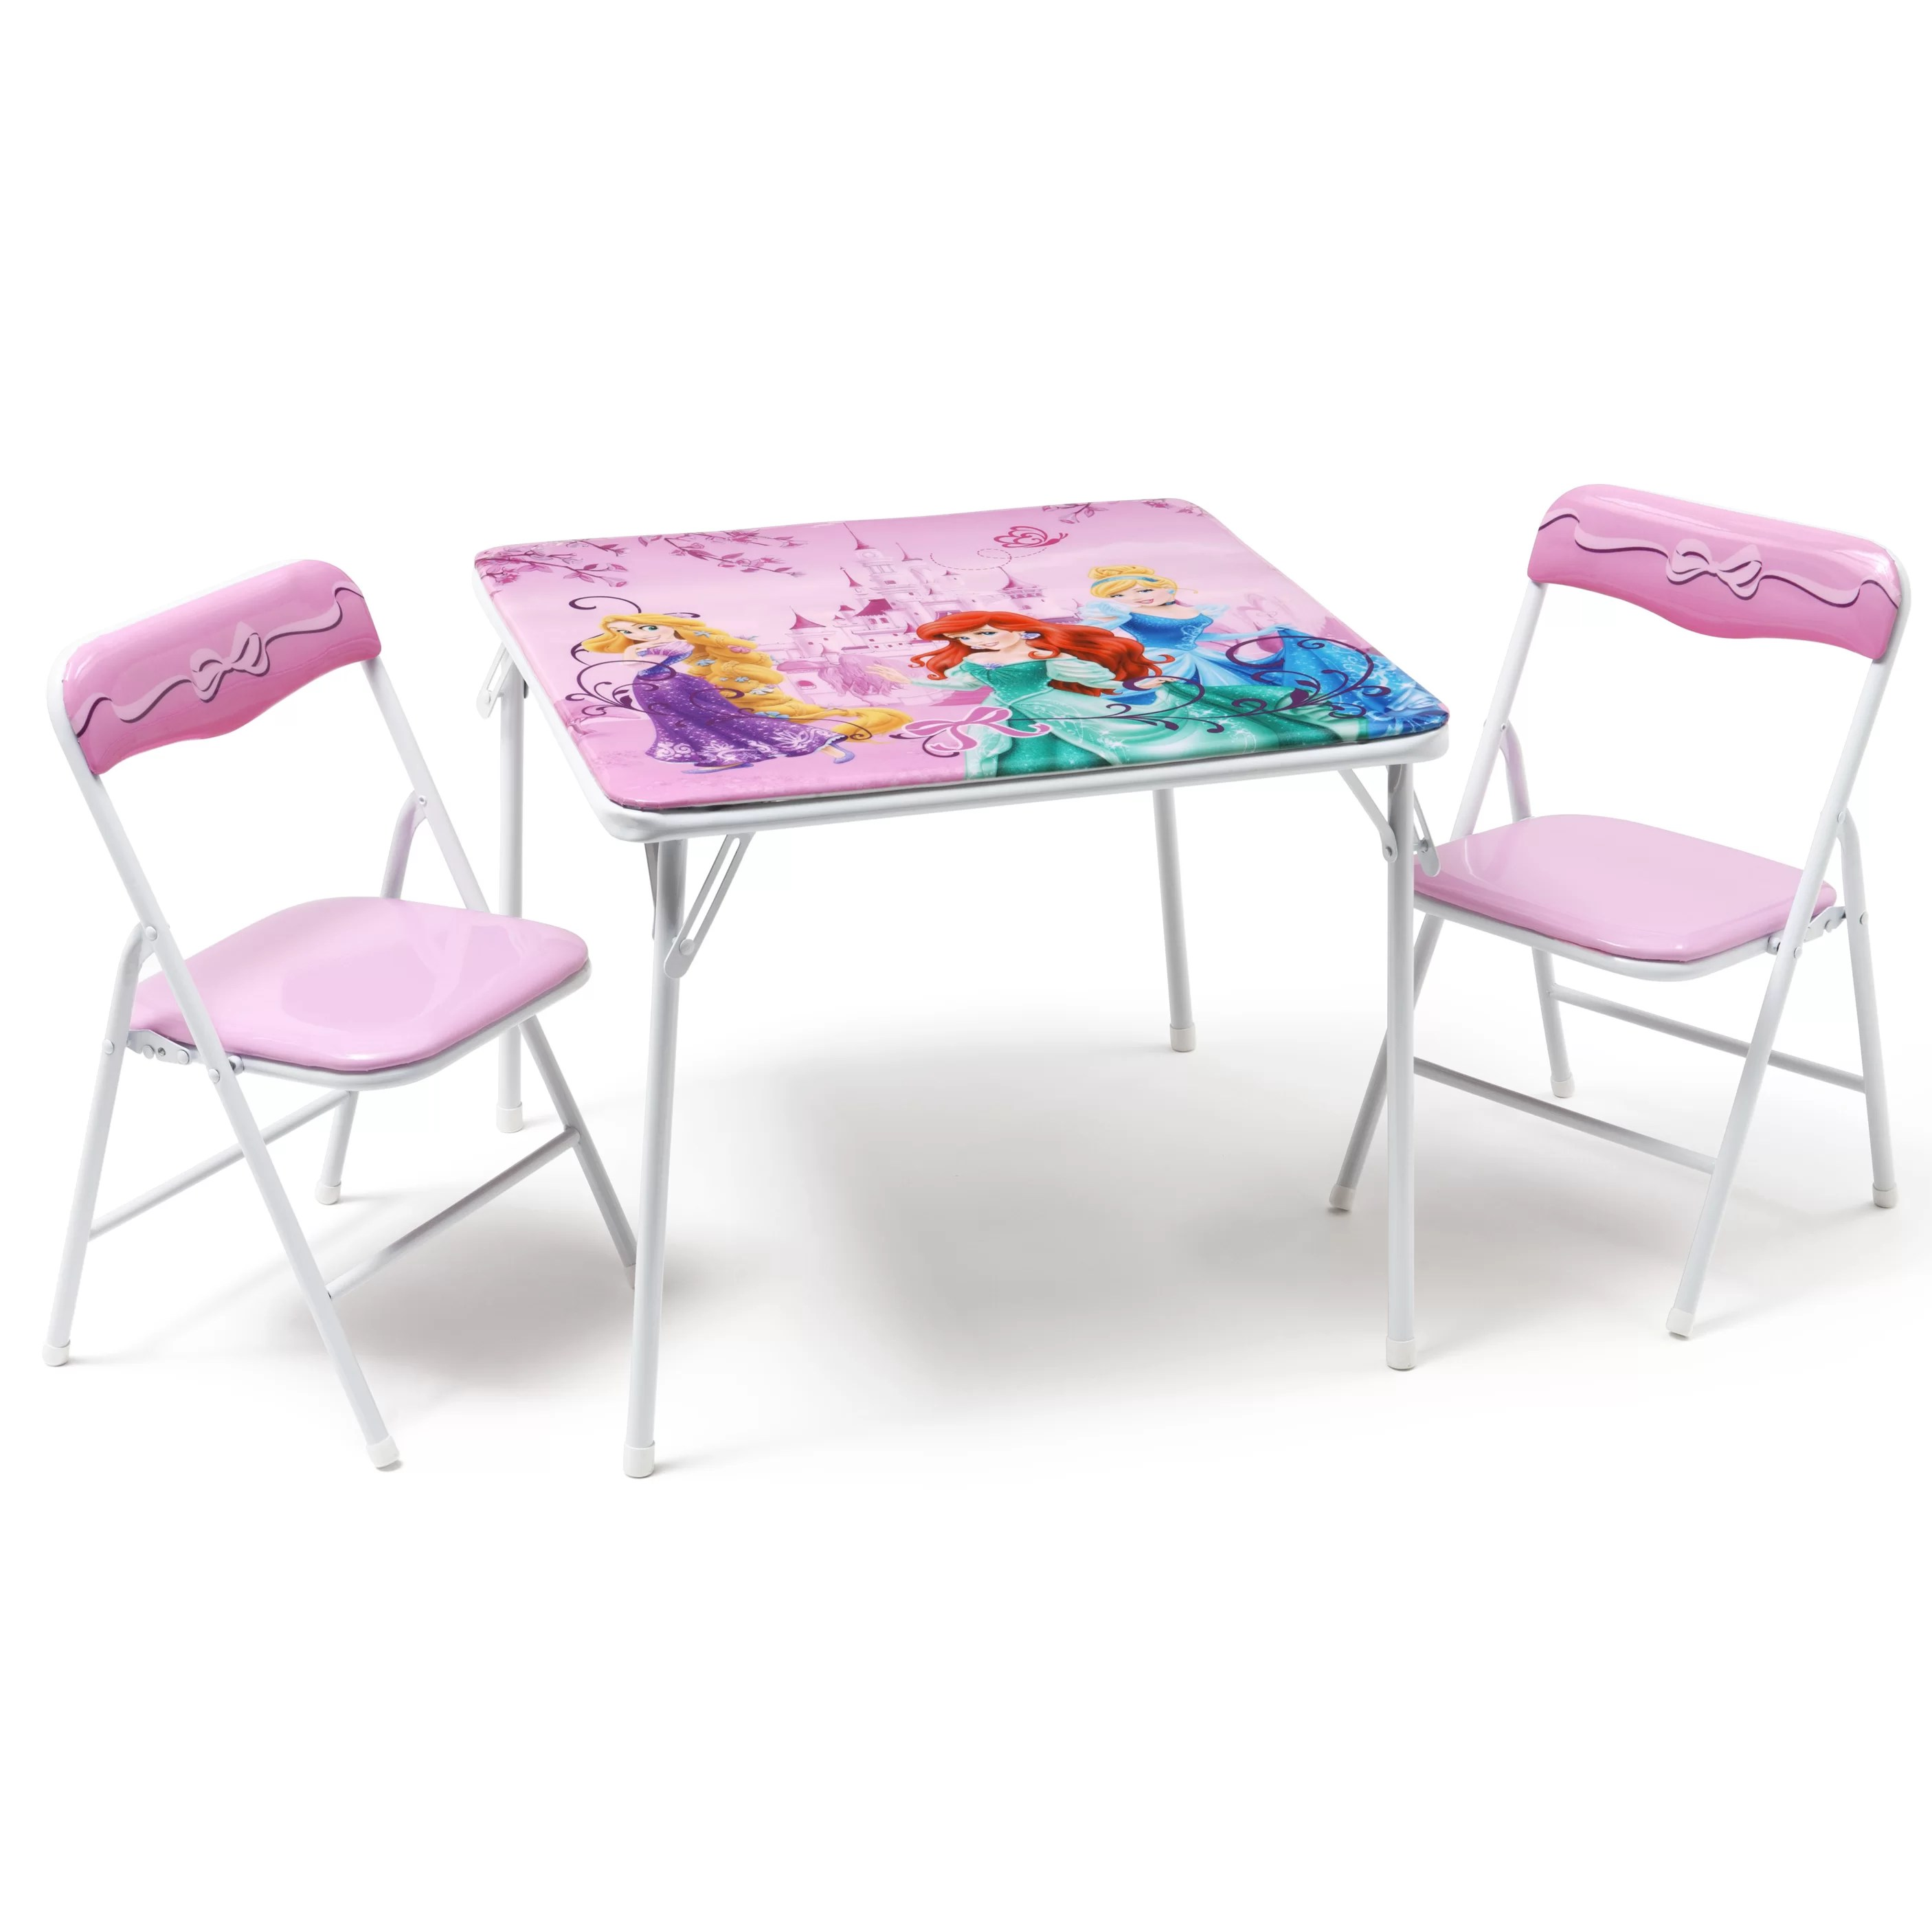 Folding Table And Chairs For Kids Deltachildren Princess Folding Children 3 Piece Square